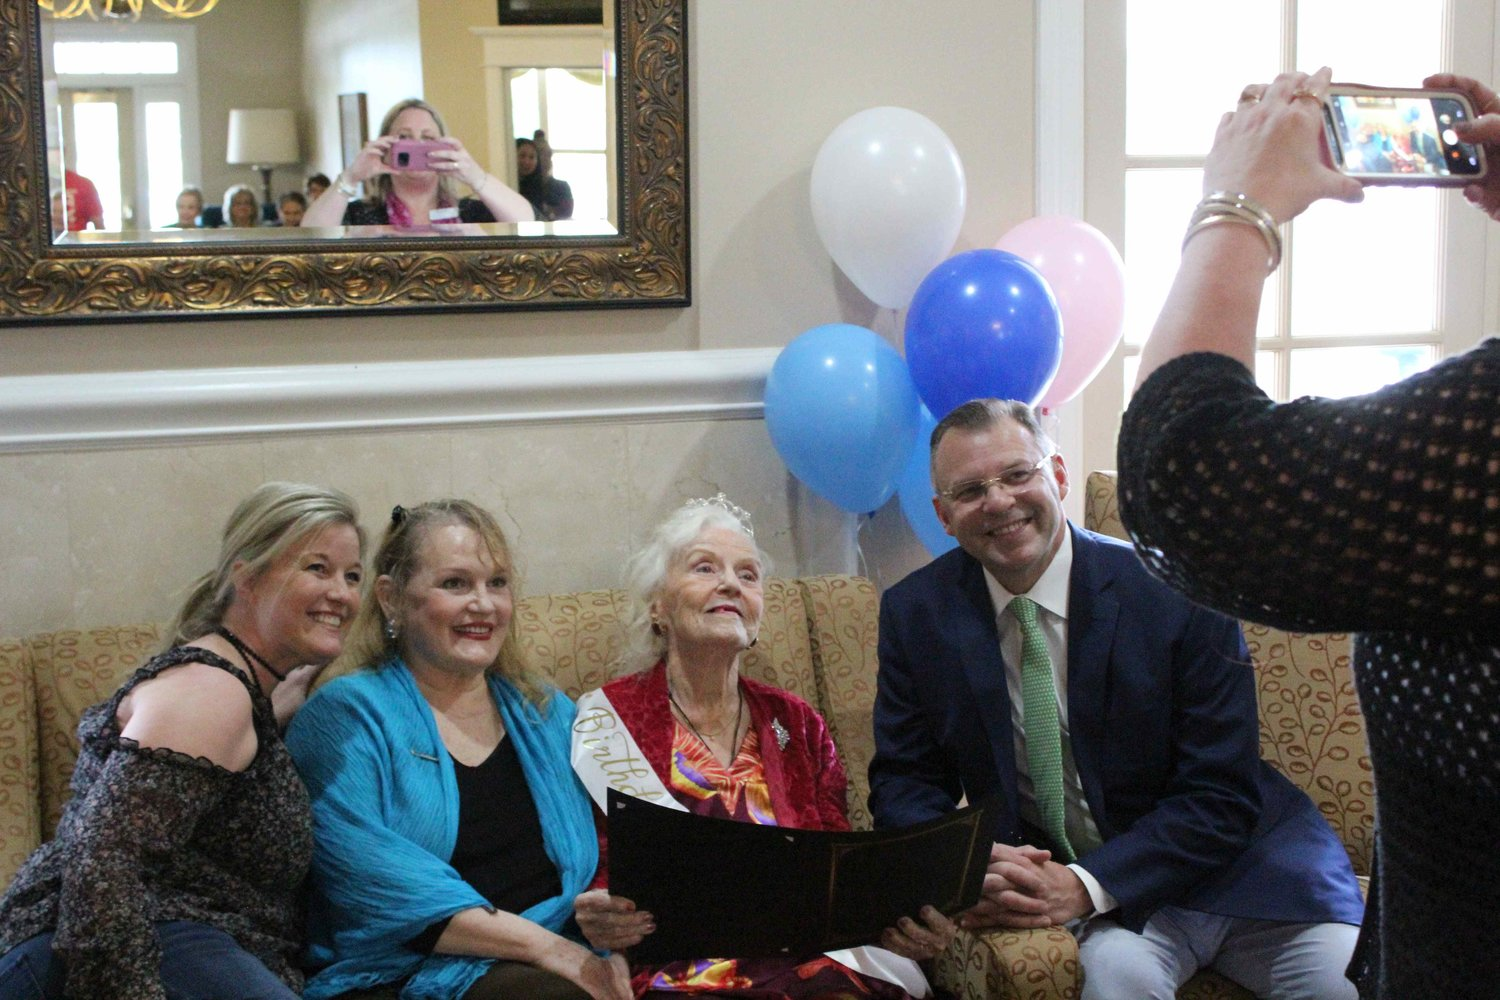 Cedar Park Mayor Corbin Van Arsdale (right), Stephanie Van Arsdale, Martha Wetherby, and her daughter Linda pose for a picture for Martha Wetherby's 102nd birthday on May 9th, 2019 at The Pointe at Cedar Park.